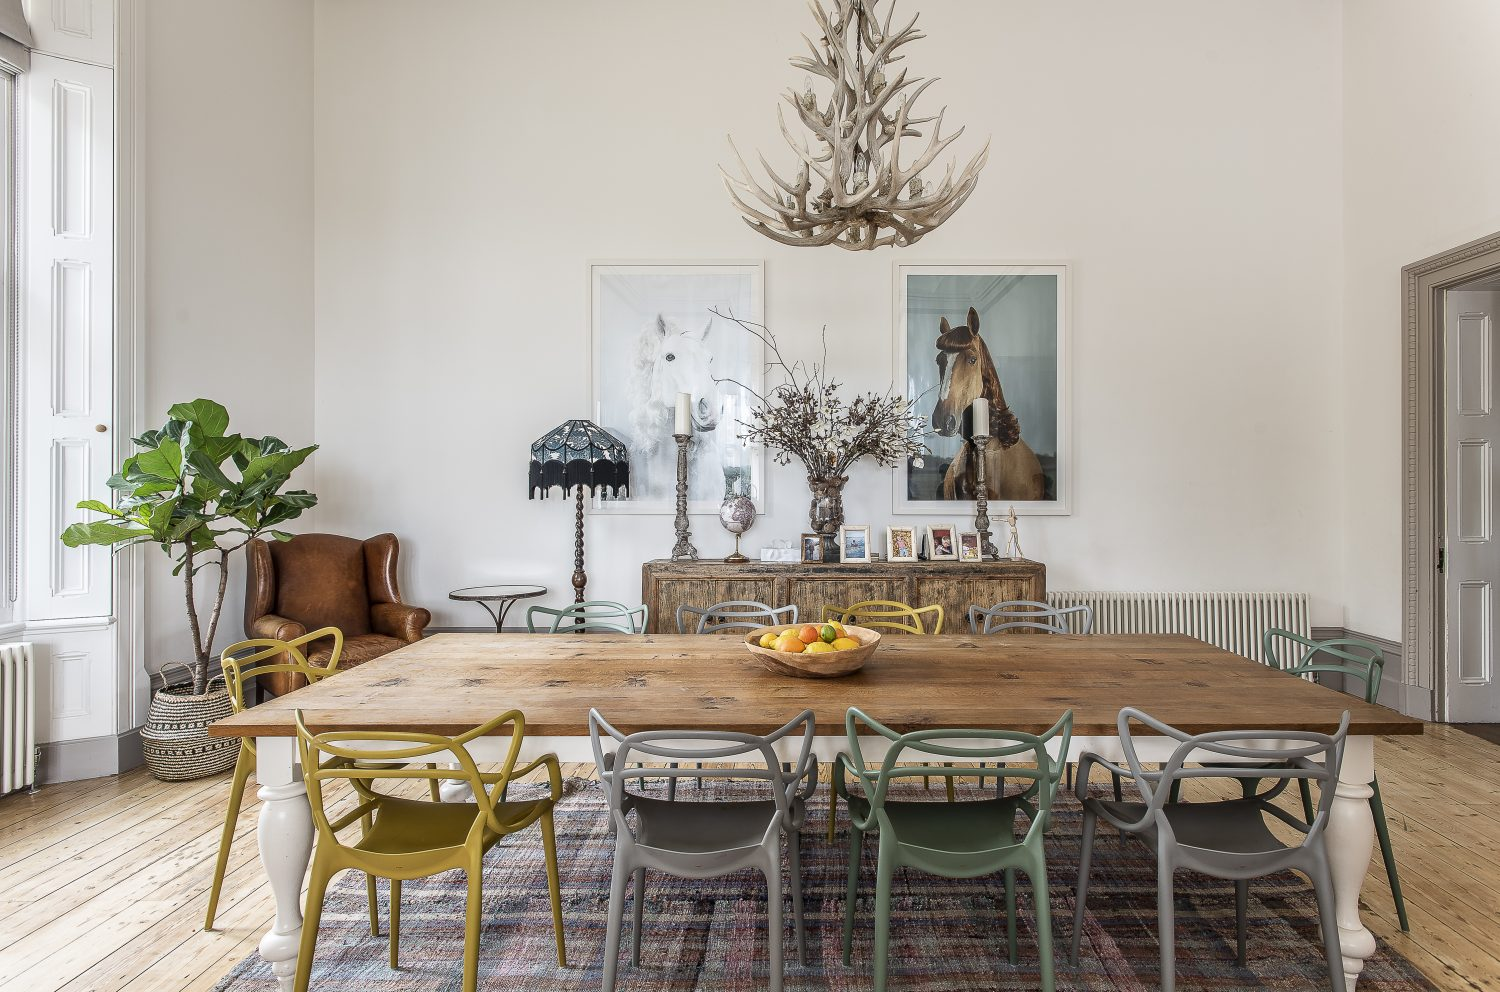 When Jaime and Justin moved their family down from London they also brought much of their art collection with them: 'Pony Pin Up' photographs by Julian Wolkenstein hang on the back wall behind a spacious – and specially designed – dining table